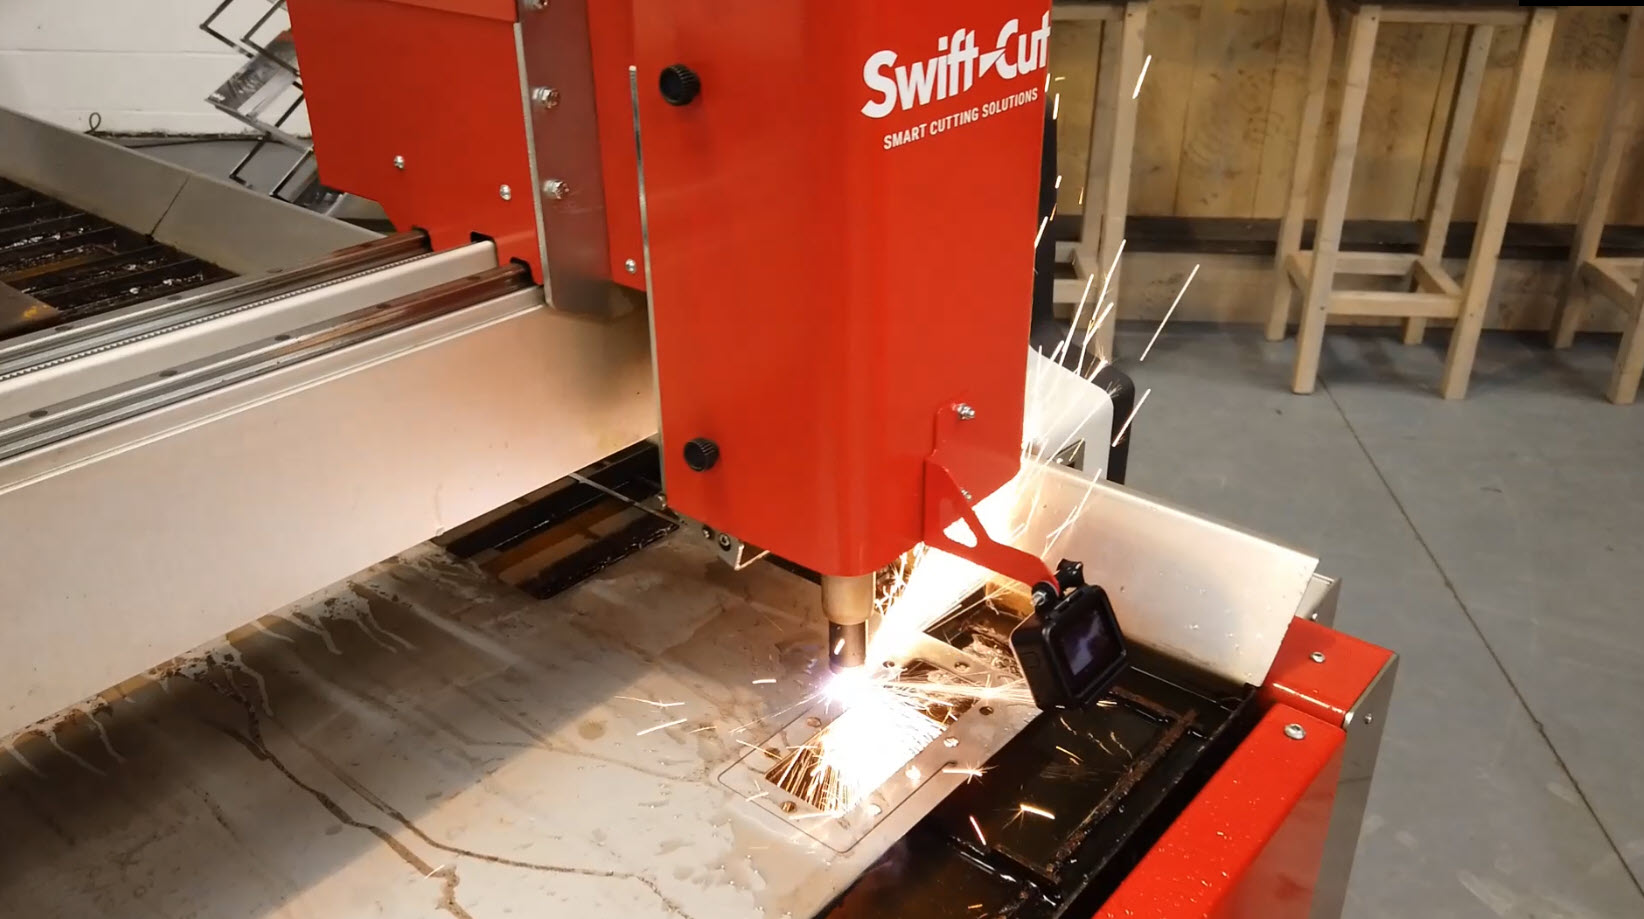 Swift-Cut Pro 1.5mm CNC cutting table cutting metal with sparks